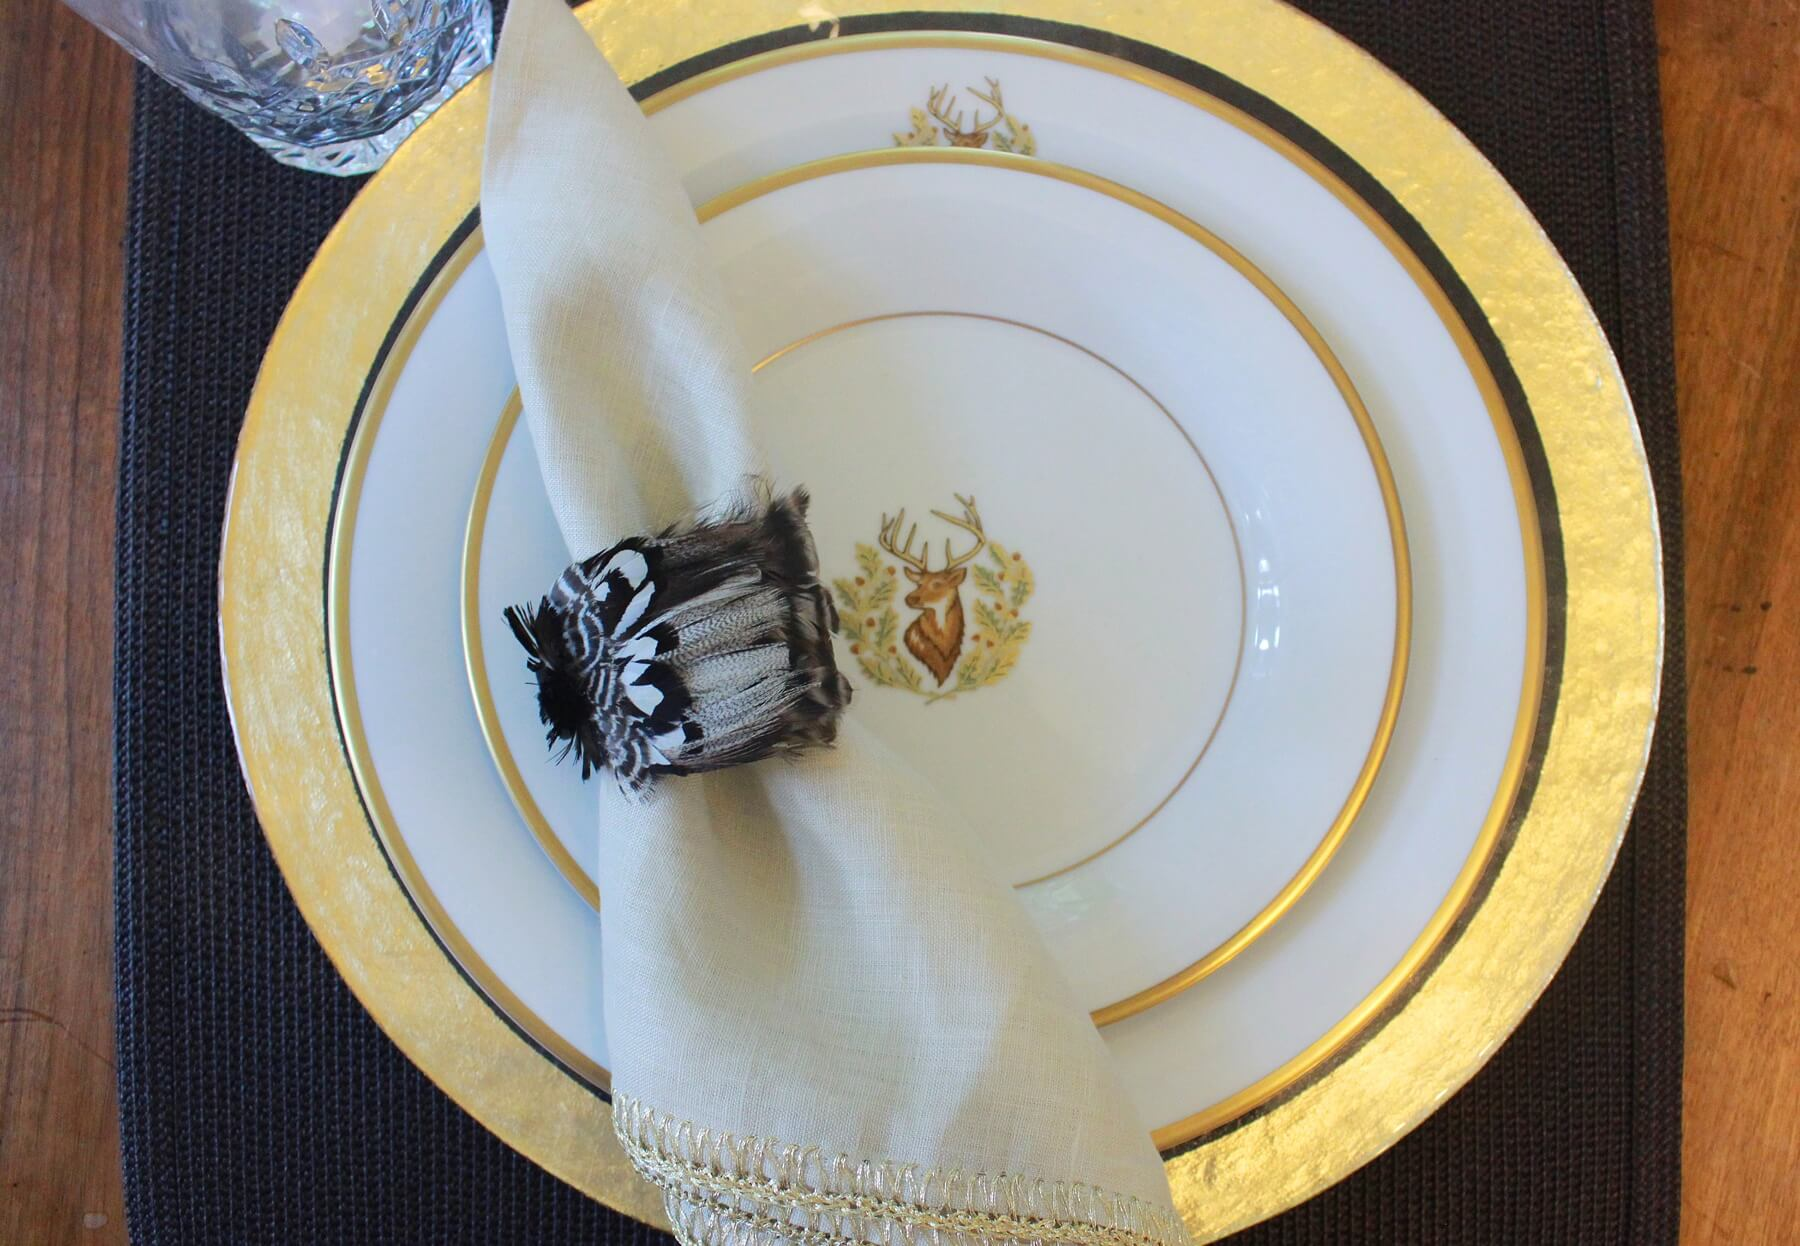 Charlotte Moss place setting, salad plate for $76, dinner plate for $102, at Social